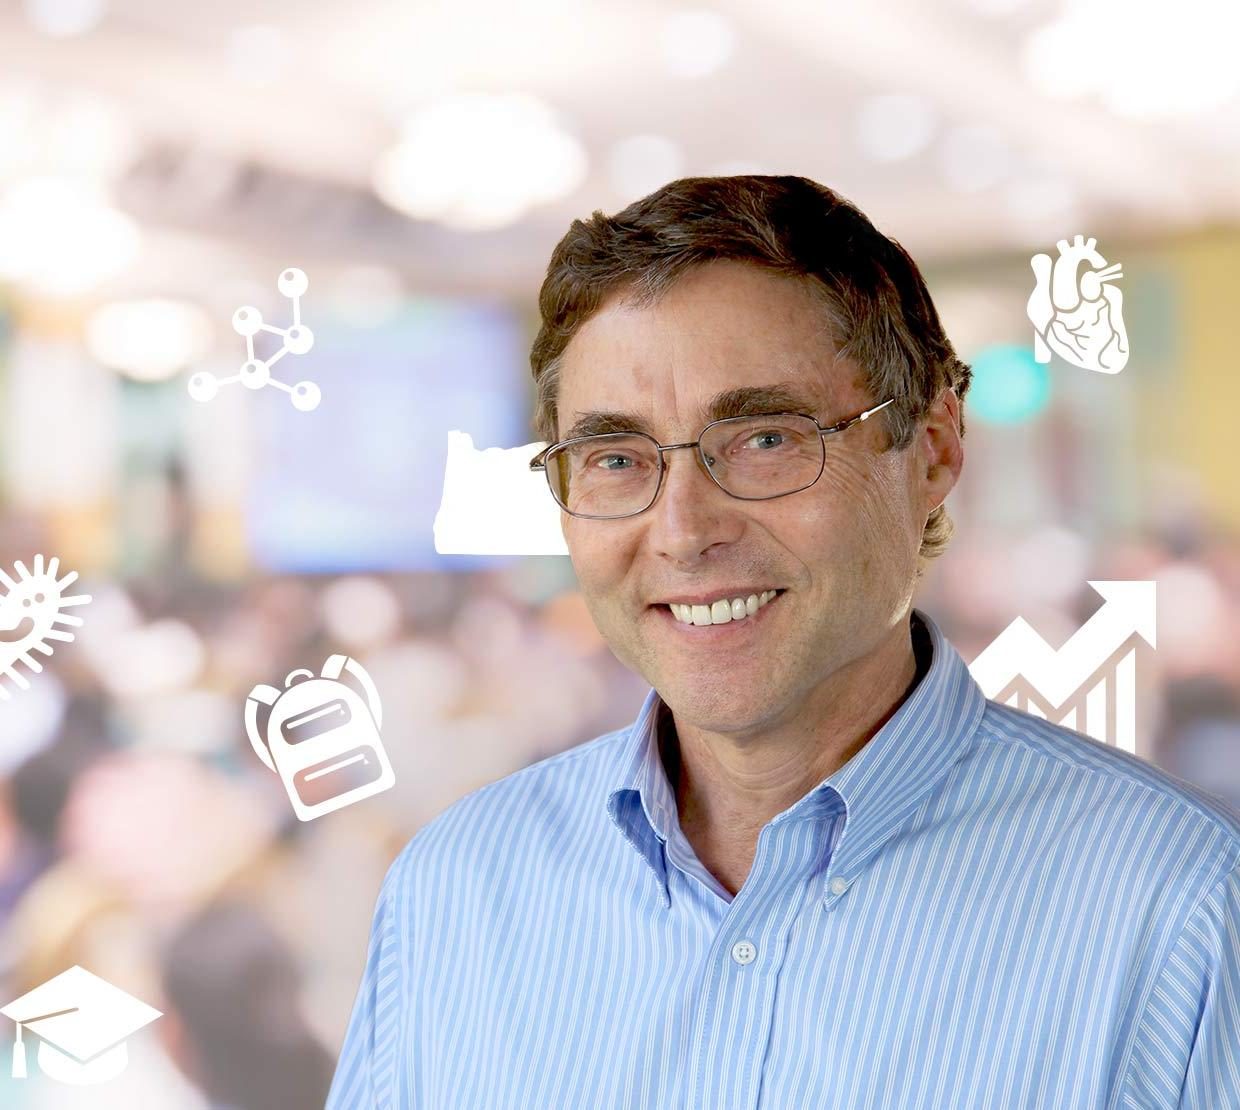 Carl Wieman in front of science major icons and audience